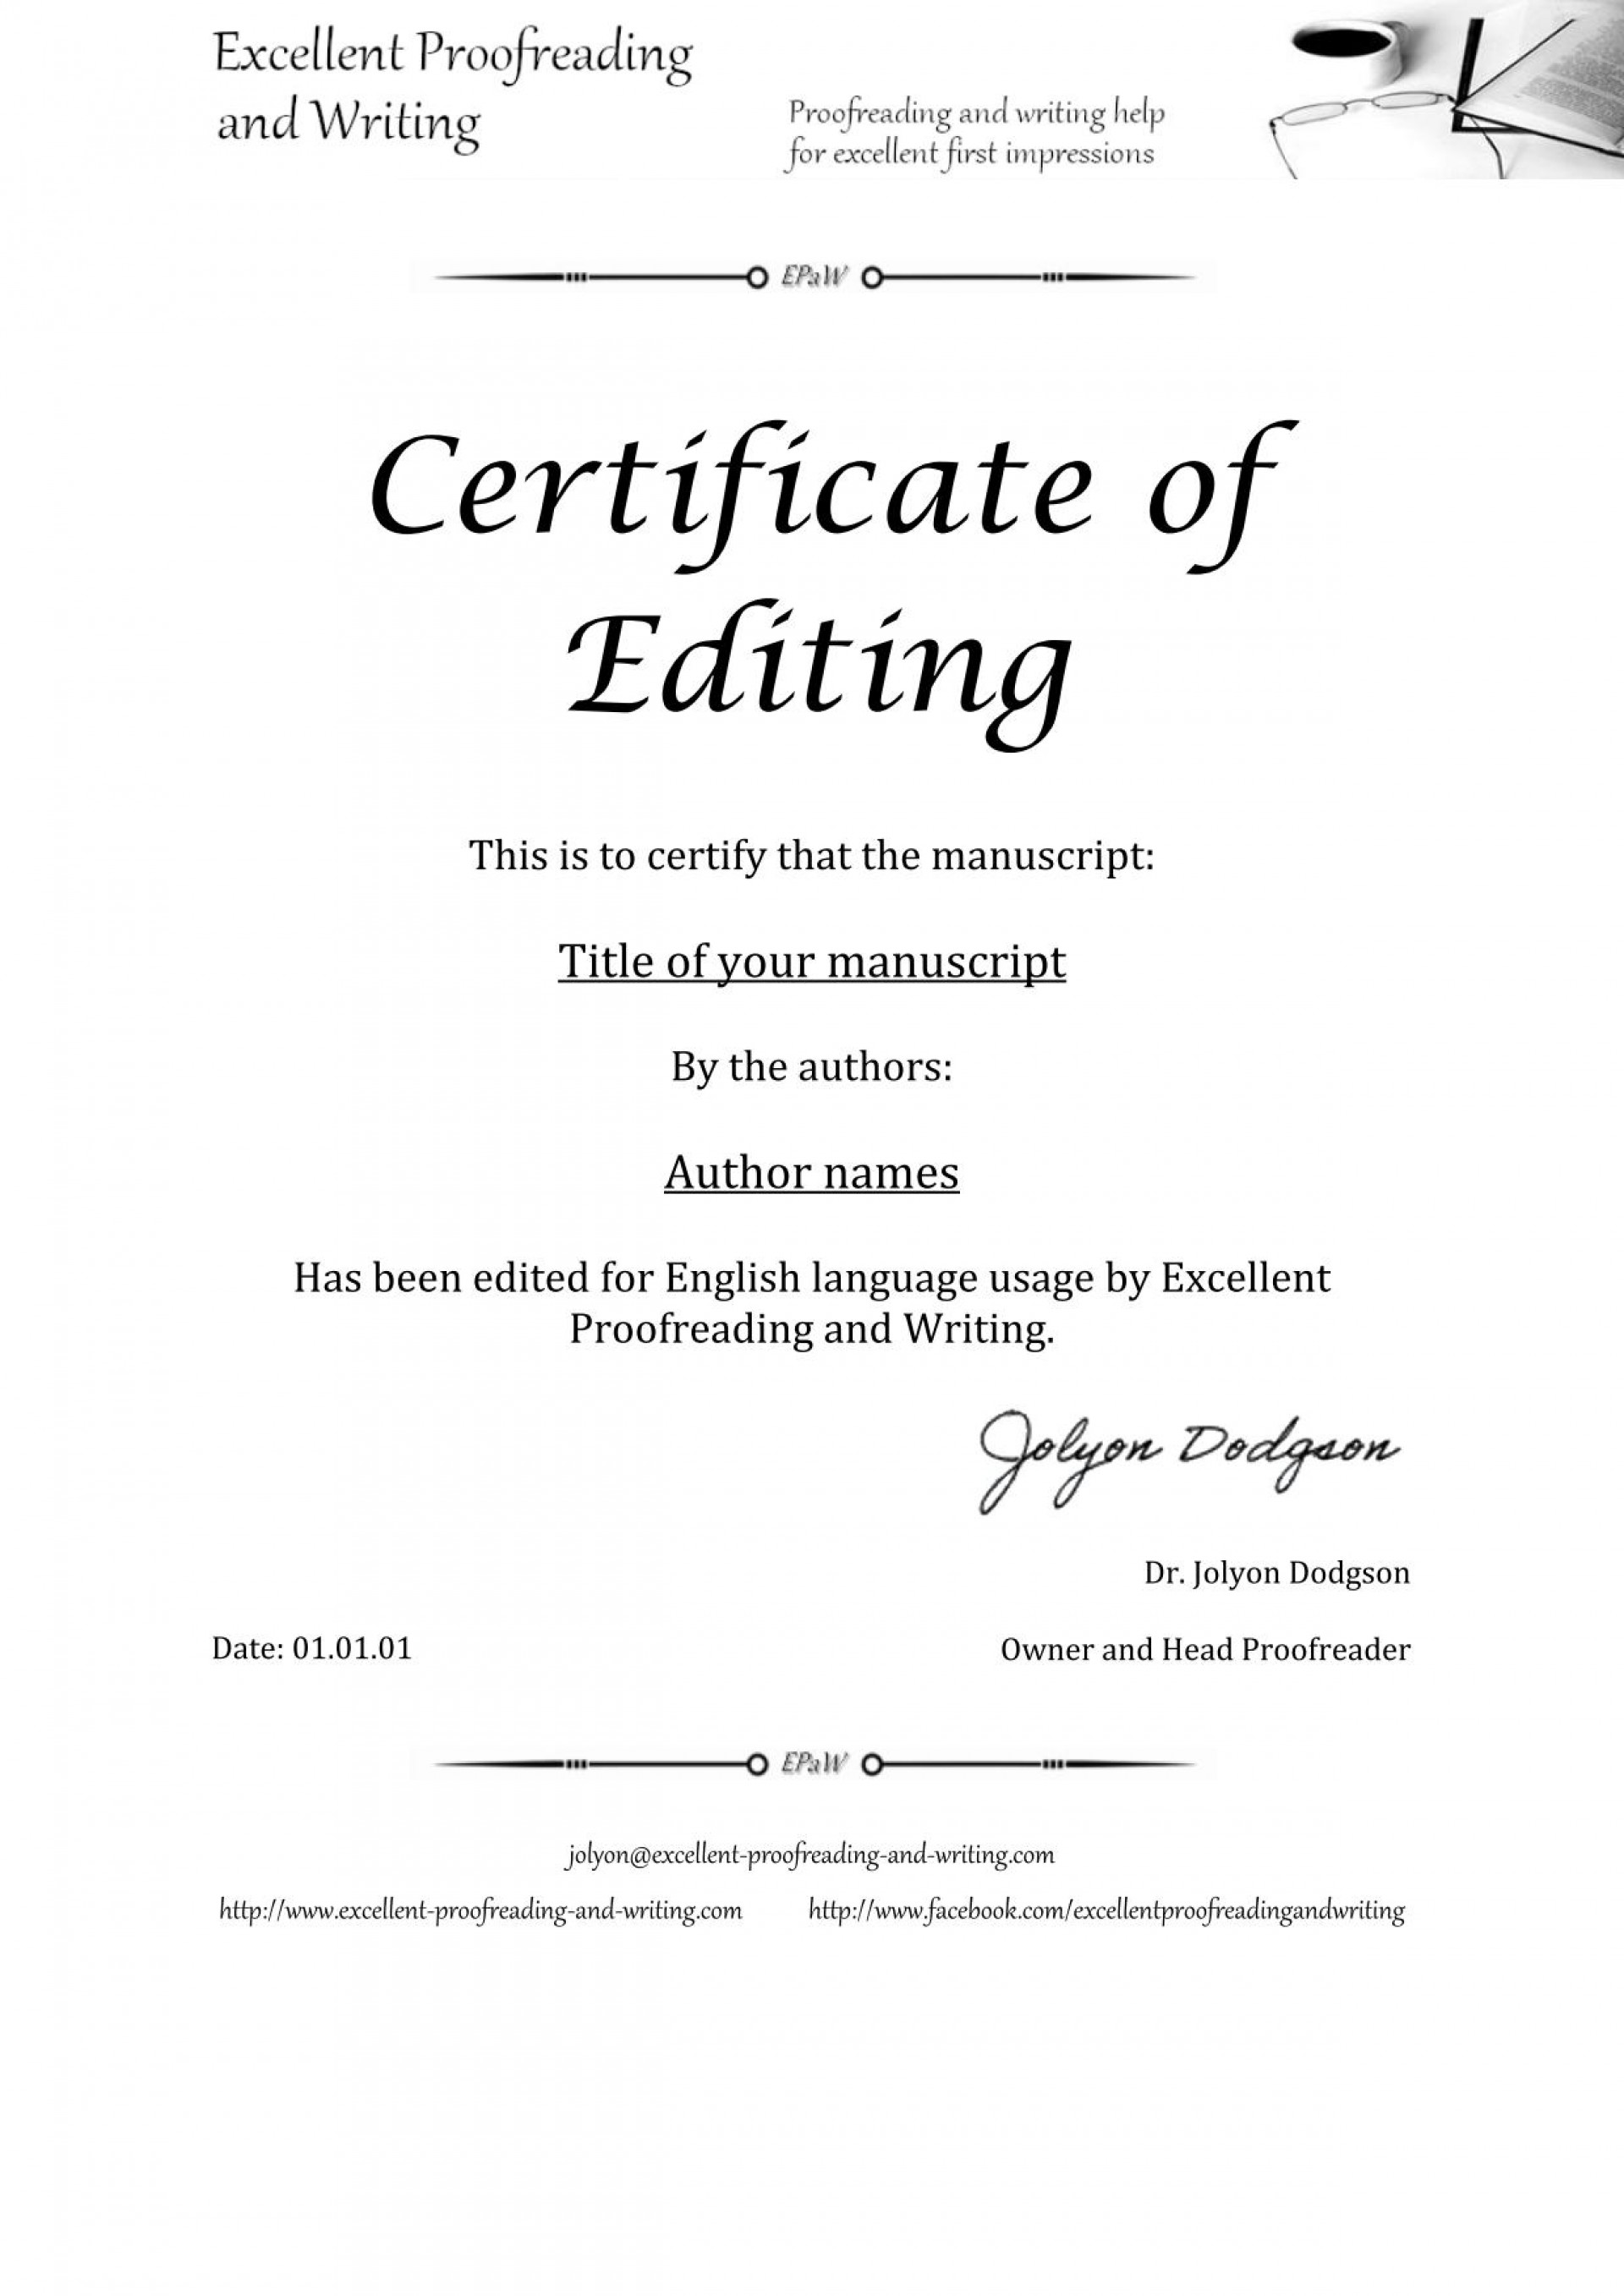 013 Essay Example Proofread Certificate Of Unique Proofreading Service Website University 1920